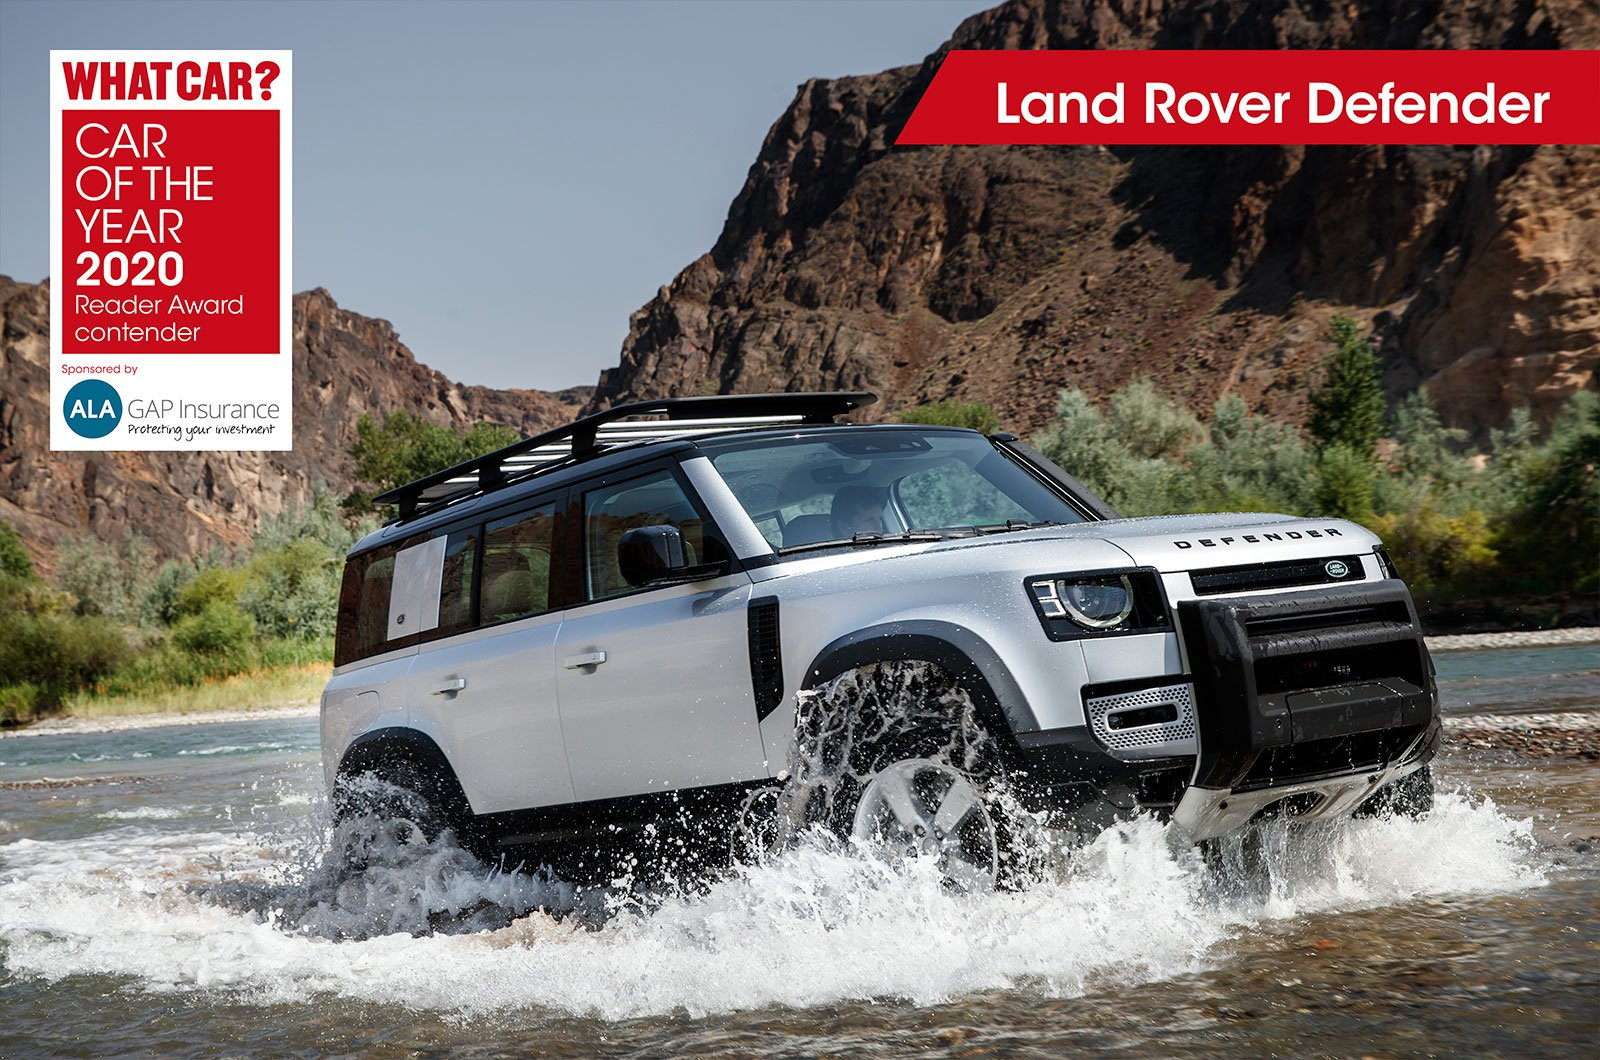 Land Rover Defender Reader Award